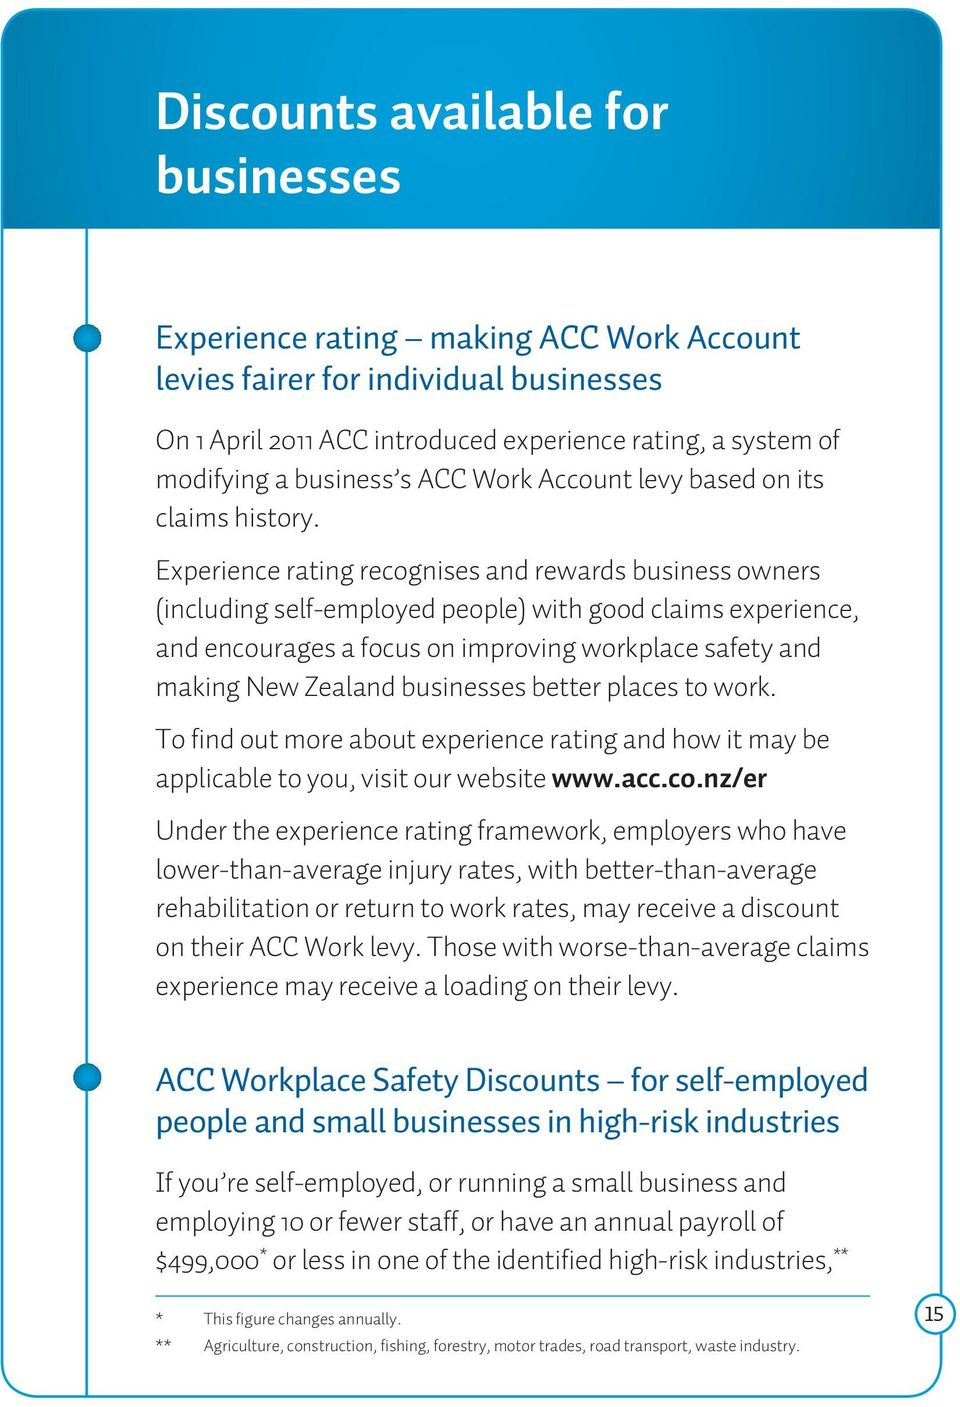 Experience rating recognises and rewards business owners (including self-employed people) with good claims experience, and encourages a focus on improving workplace safety and making New Zealand